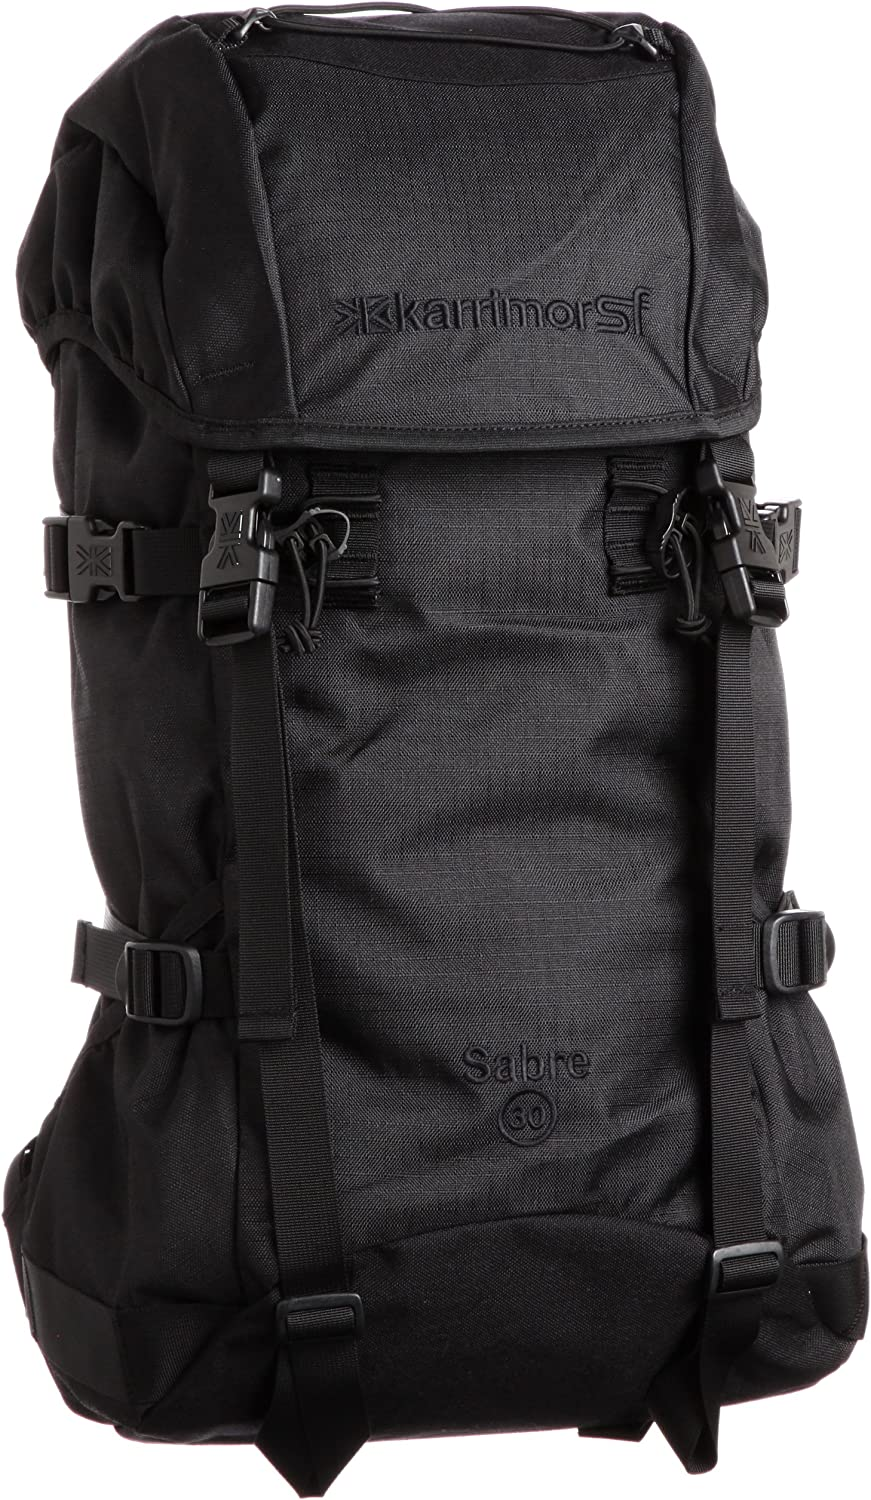 Karrimor SF Sabre 30 Backpack